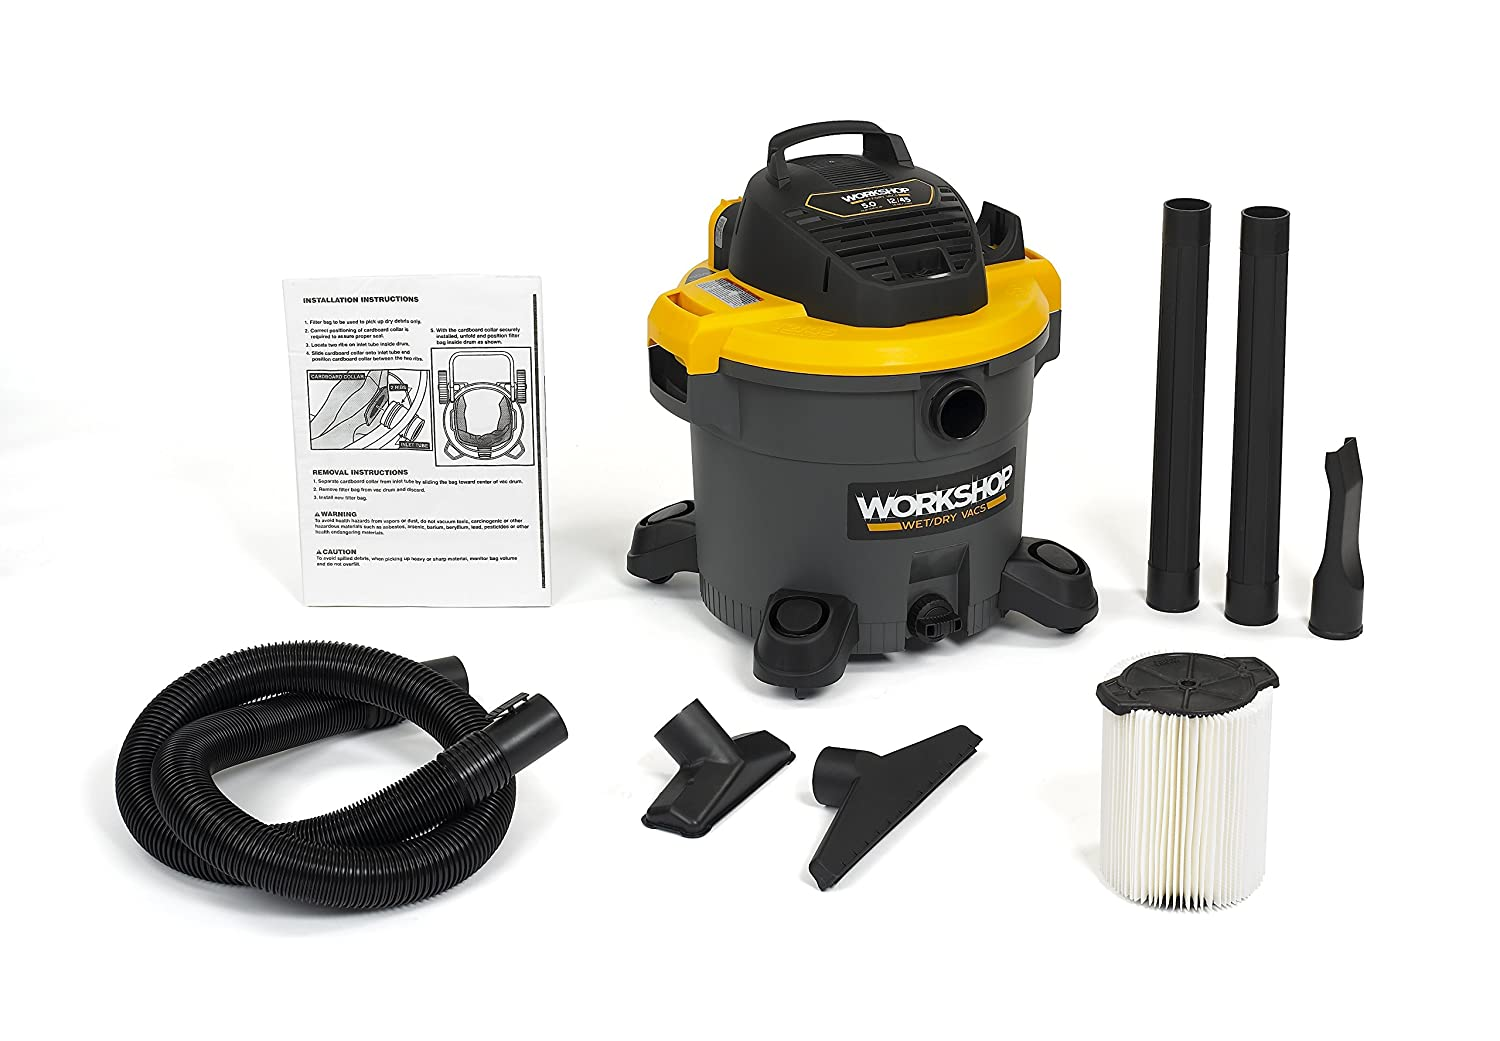 WORKSHOP Wet Dry Vac WS1200VA Heavy Duty General Purpose Wet Dry Vacuum Cleaner, 12-Gallon Shop Vacuum Cleaner, 5.0 Peak HP Wet And Dry Vacuum